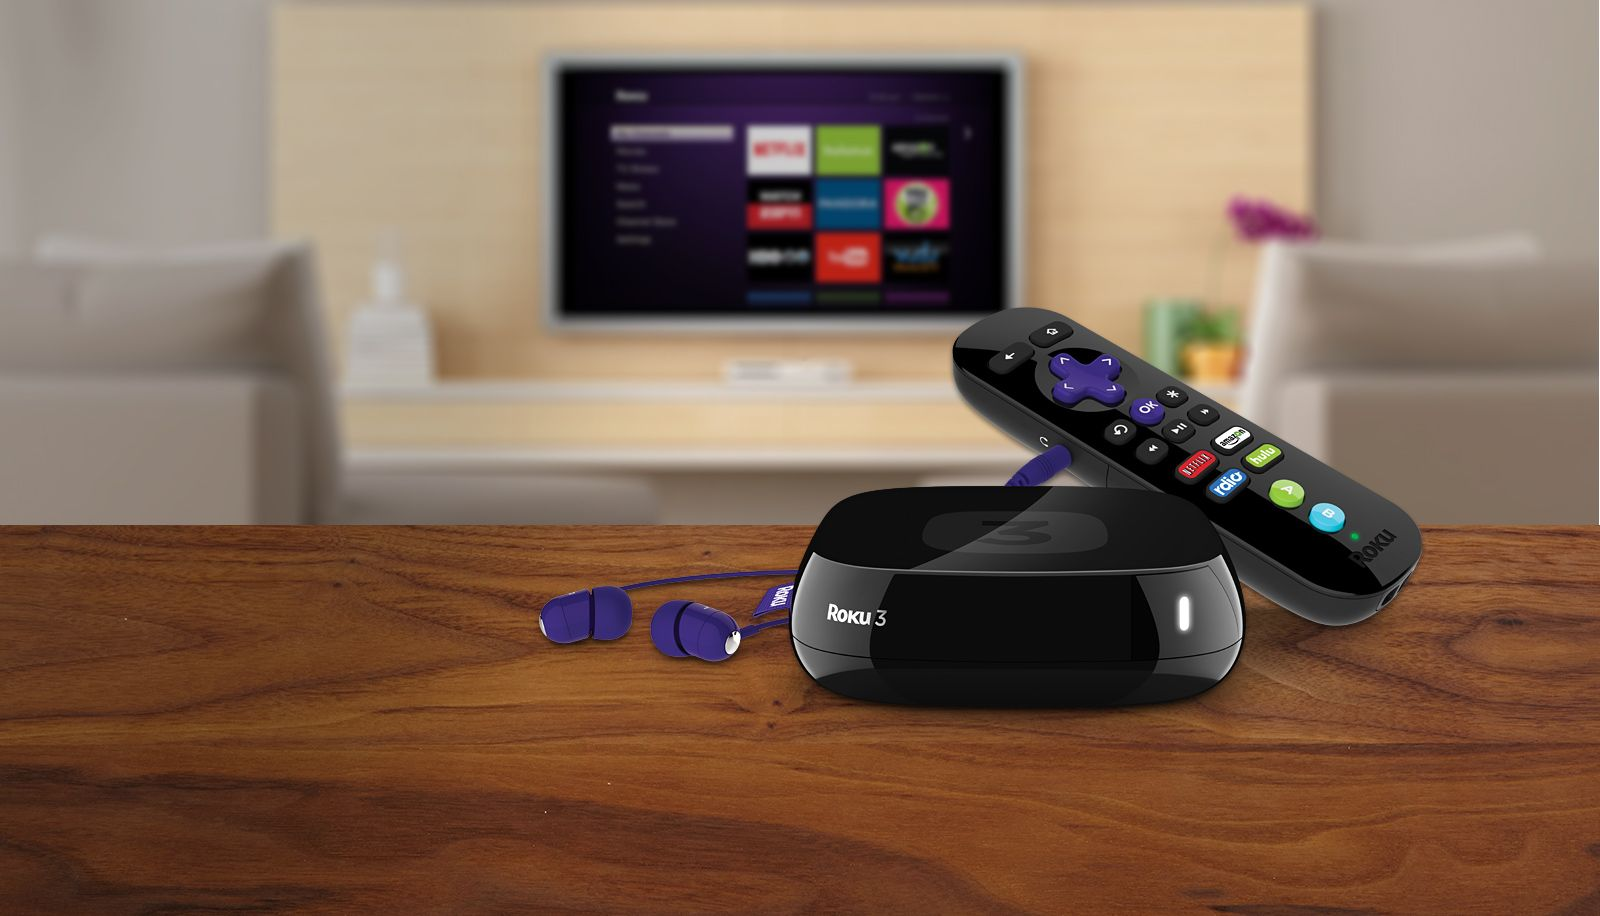 Roku 3 - I hate to say it because I'm a huge Apple fan, but this Roku 3 is far superior to Apple TV.  Absolutely love it.